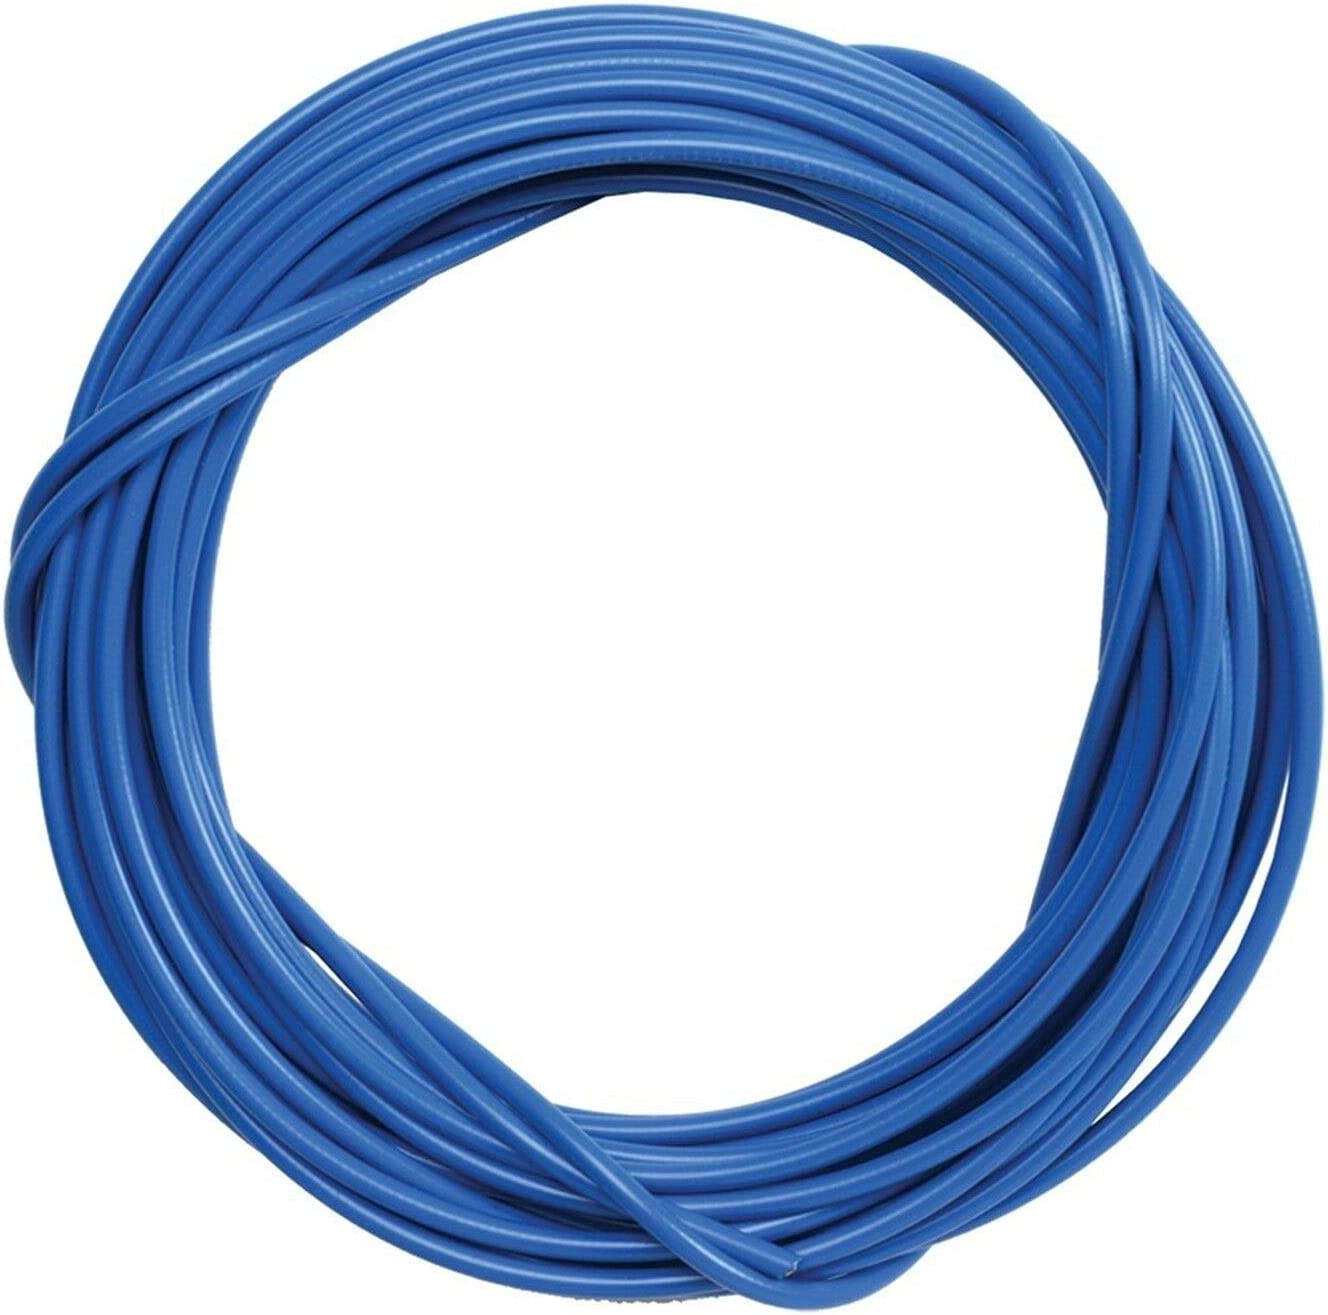 SUNLITE Lined Brake Cable x Max 62% OFF Quality inspection 50ft Housing 5mm